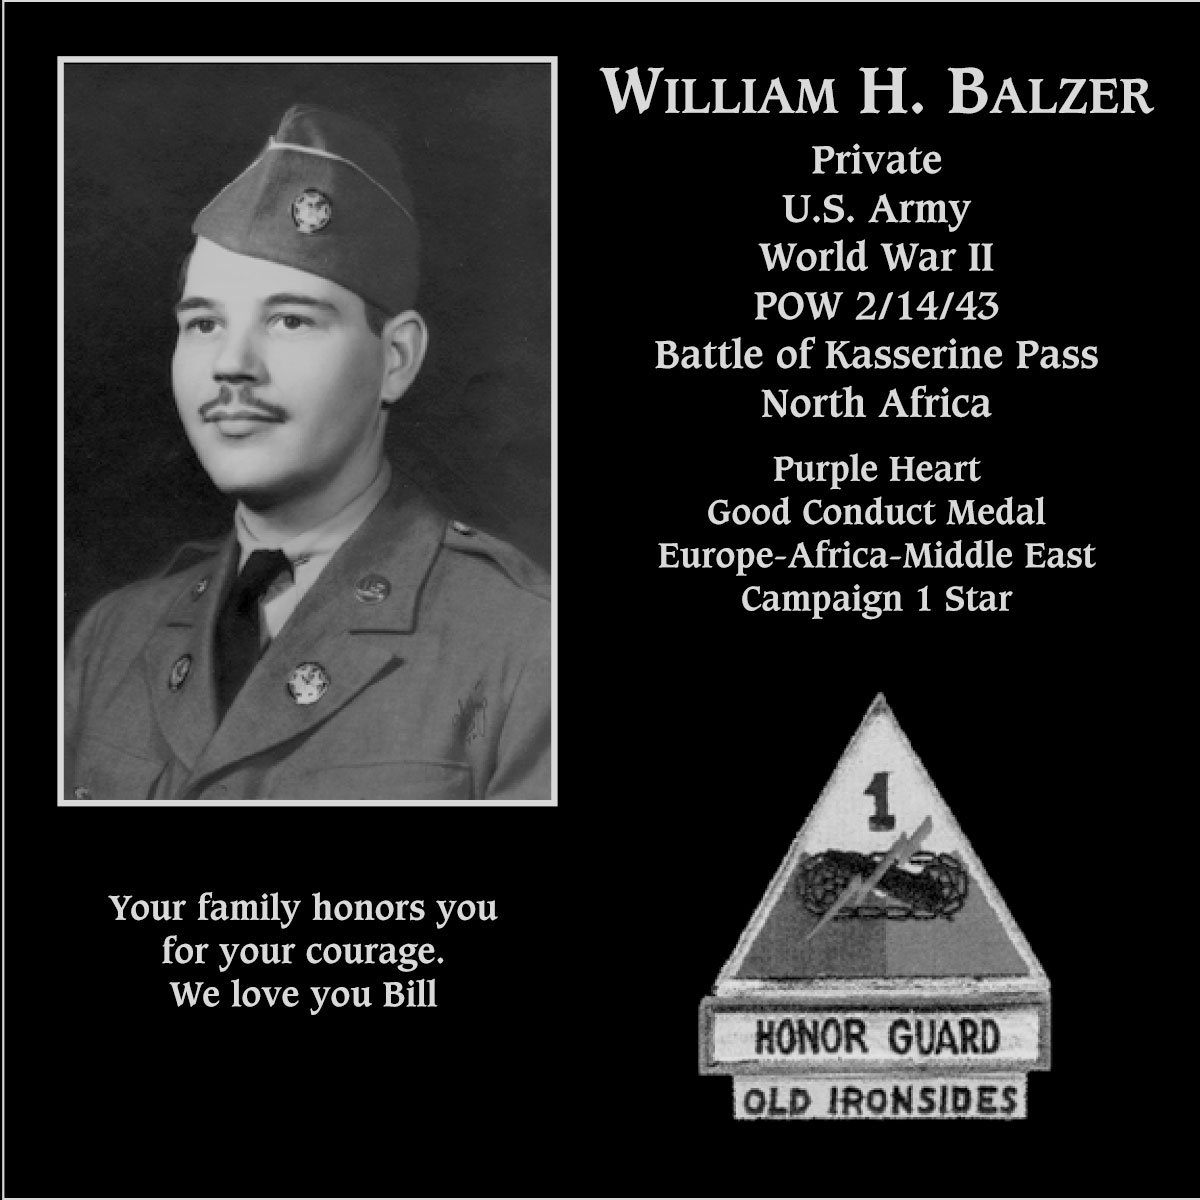 William H. Balzer